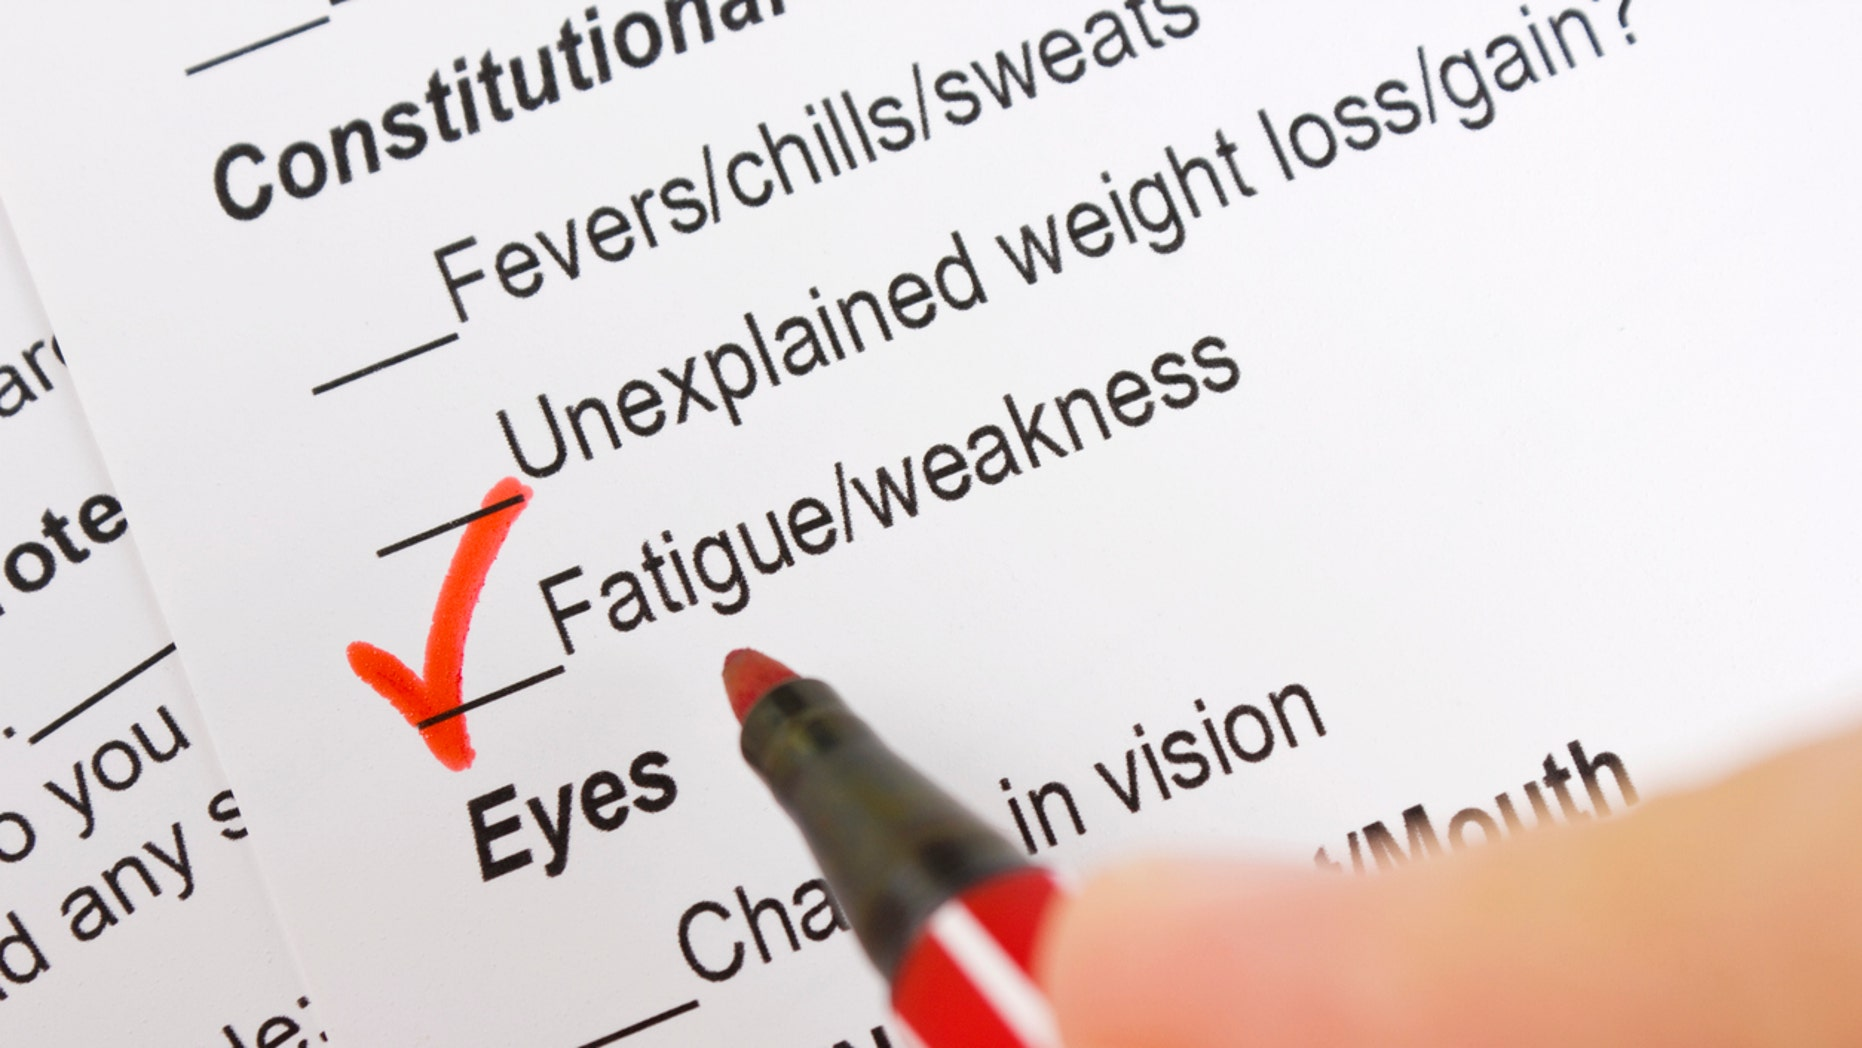 7 early signs of MS you should know about | Fox News